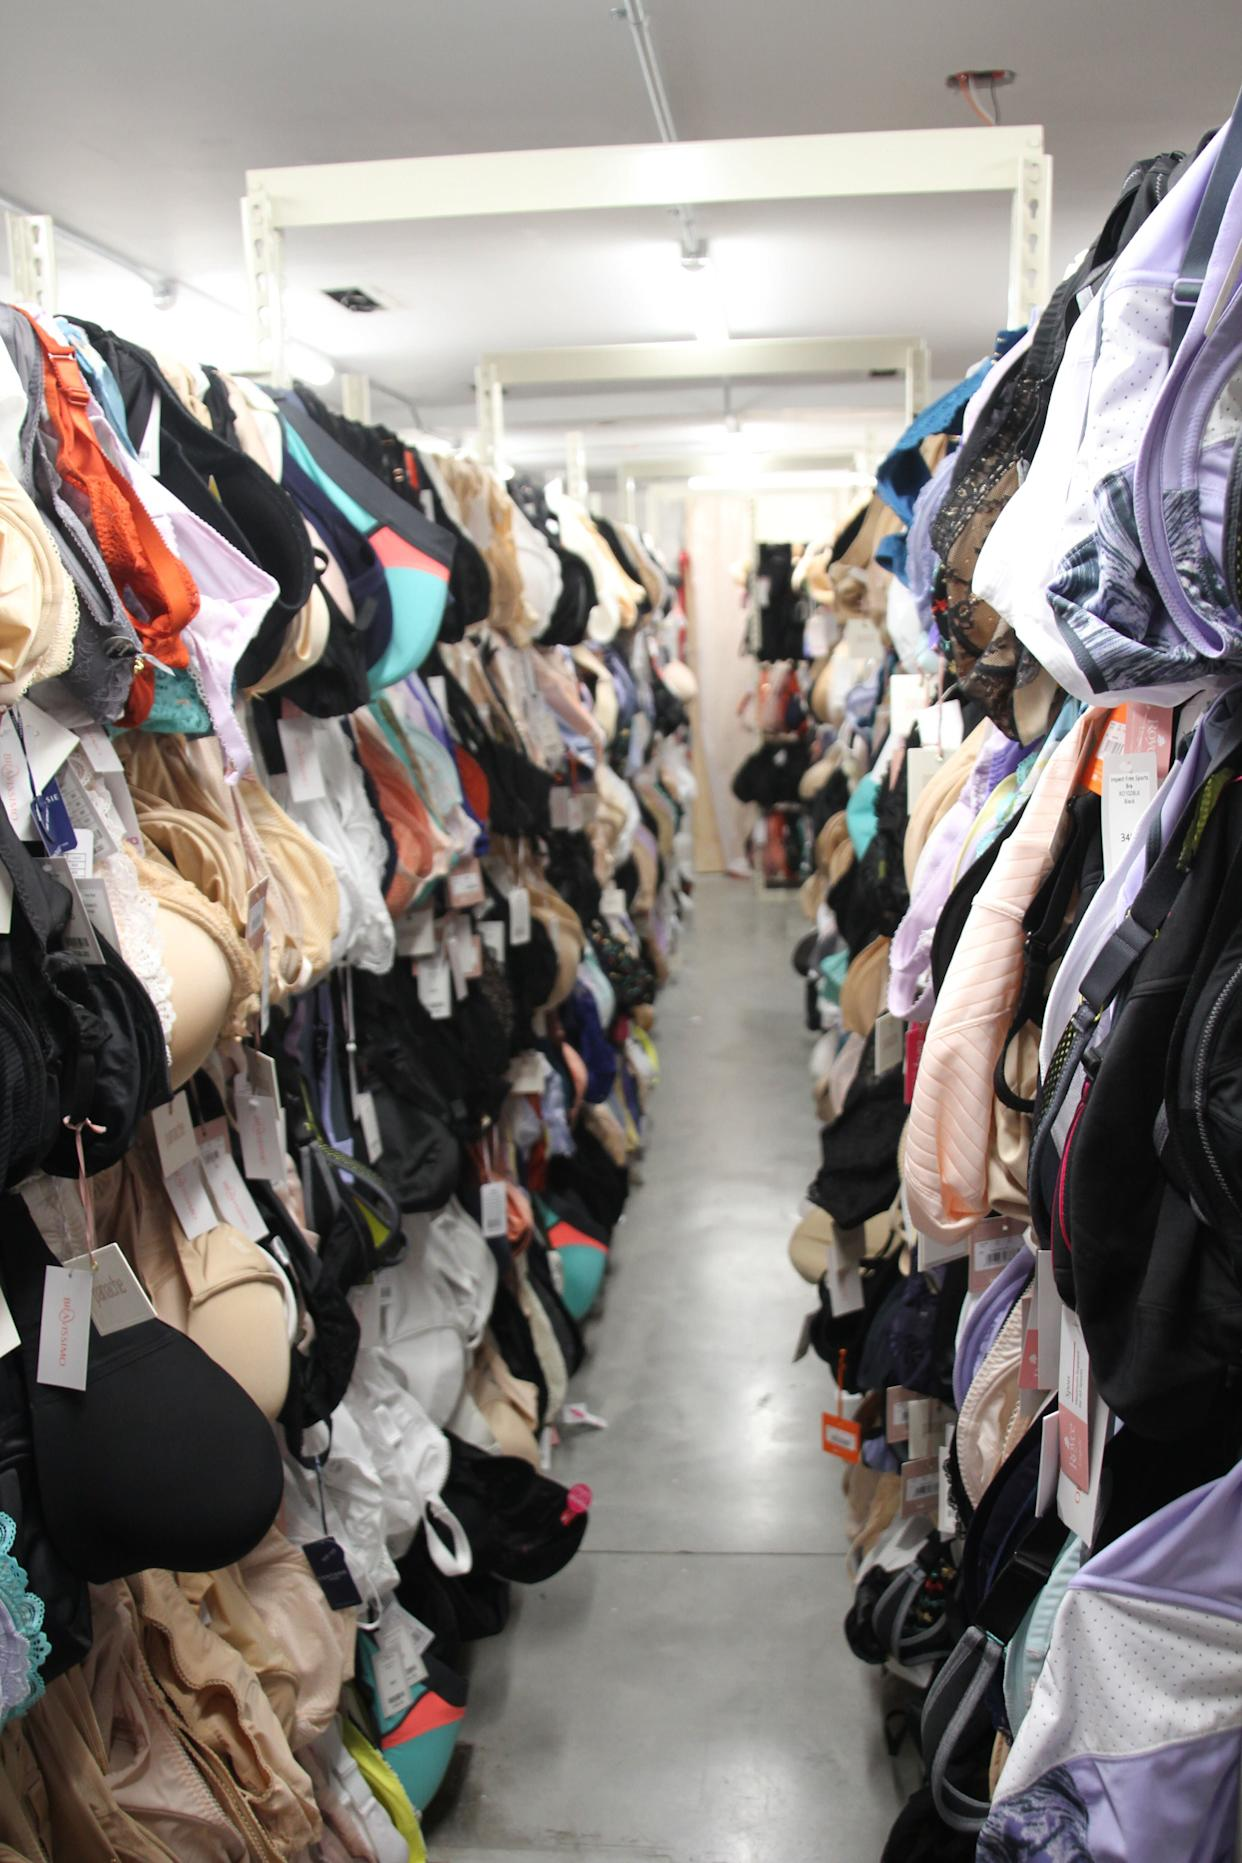 Bravissimo's stock room in New York City includes bras in cup sizes ranging all the way up to L. (Photo: Bravissimo)